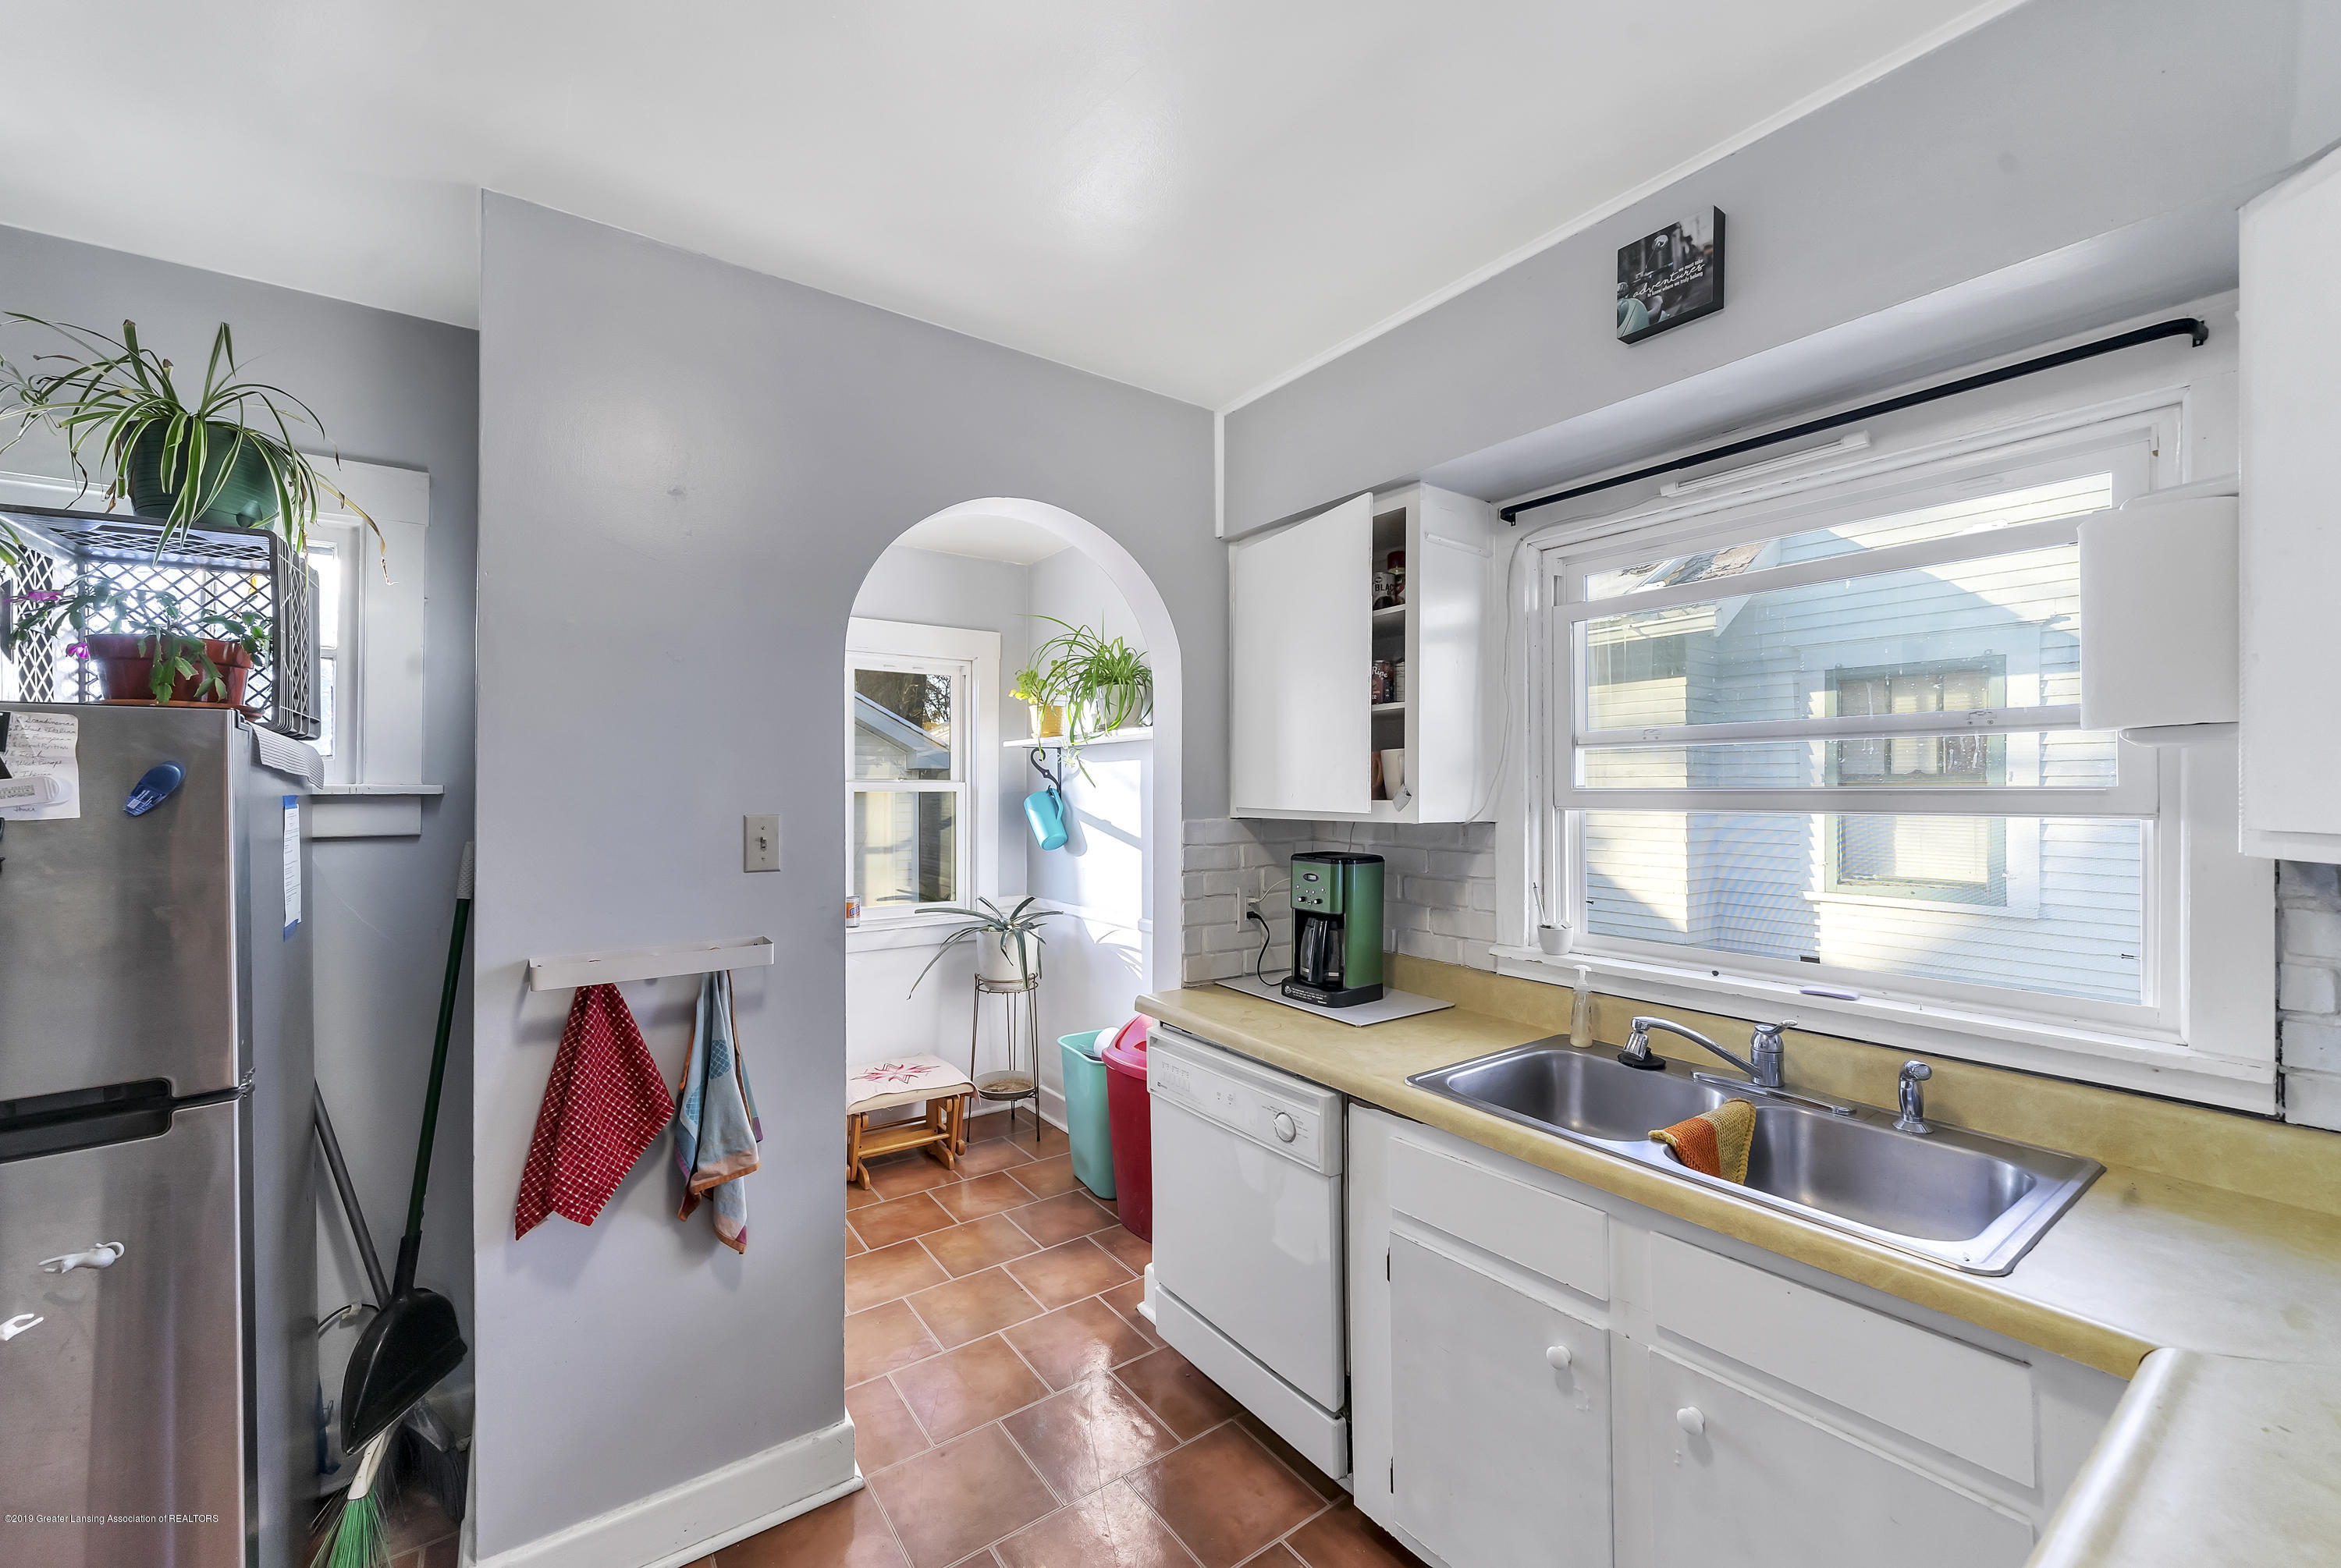 1004 S Holmes St - 1004-S-Holmes-st-WindowStill-Real-Estate - 15